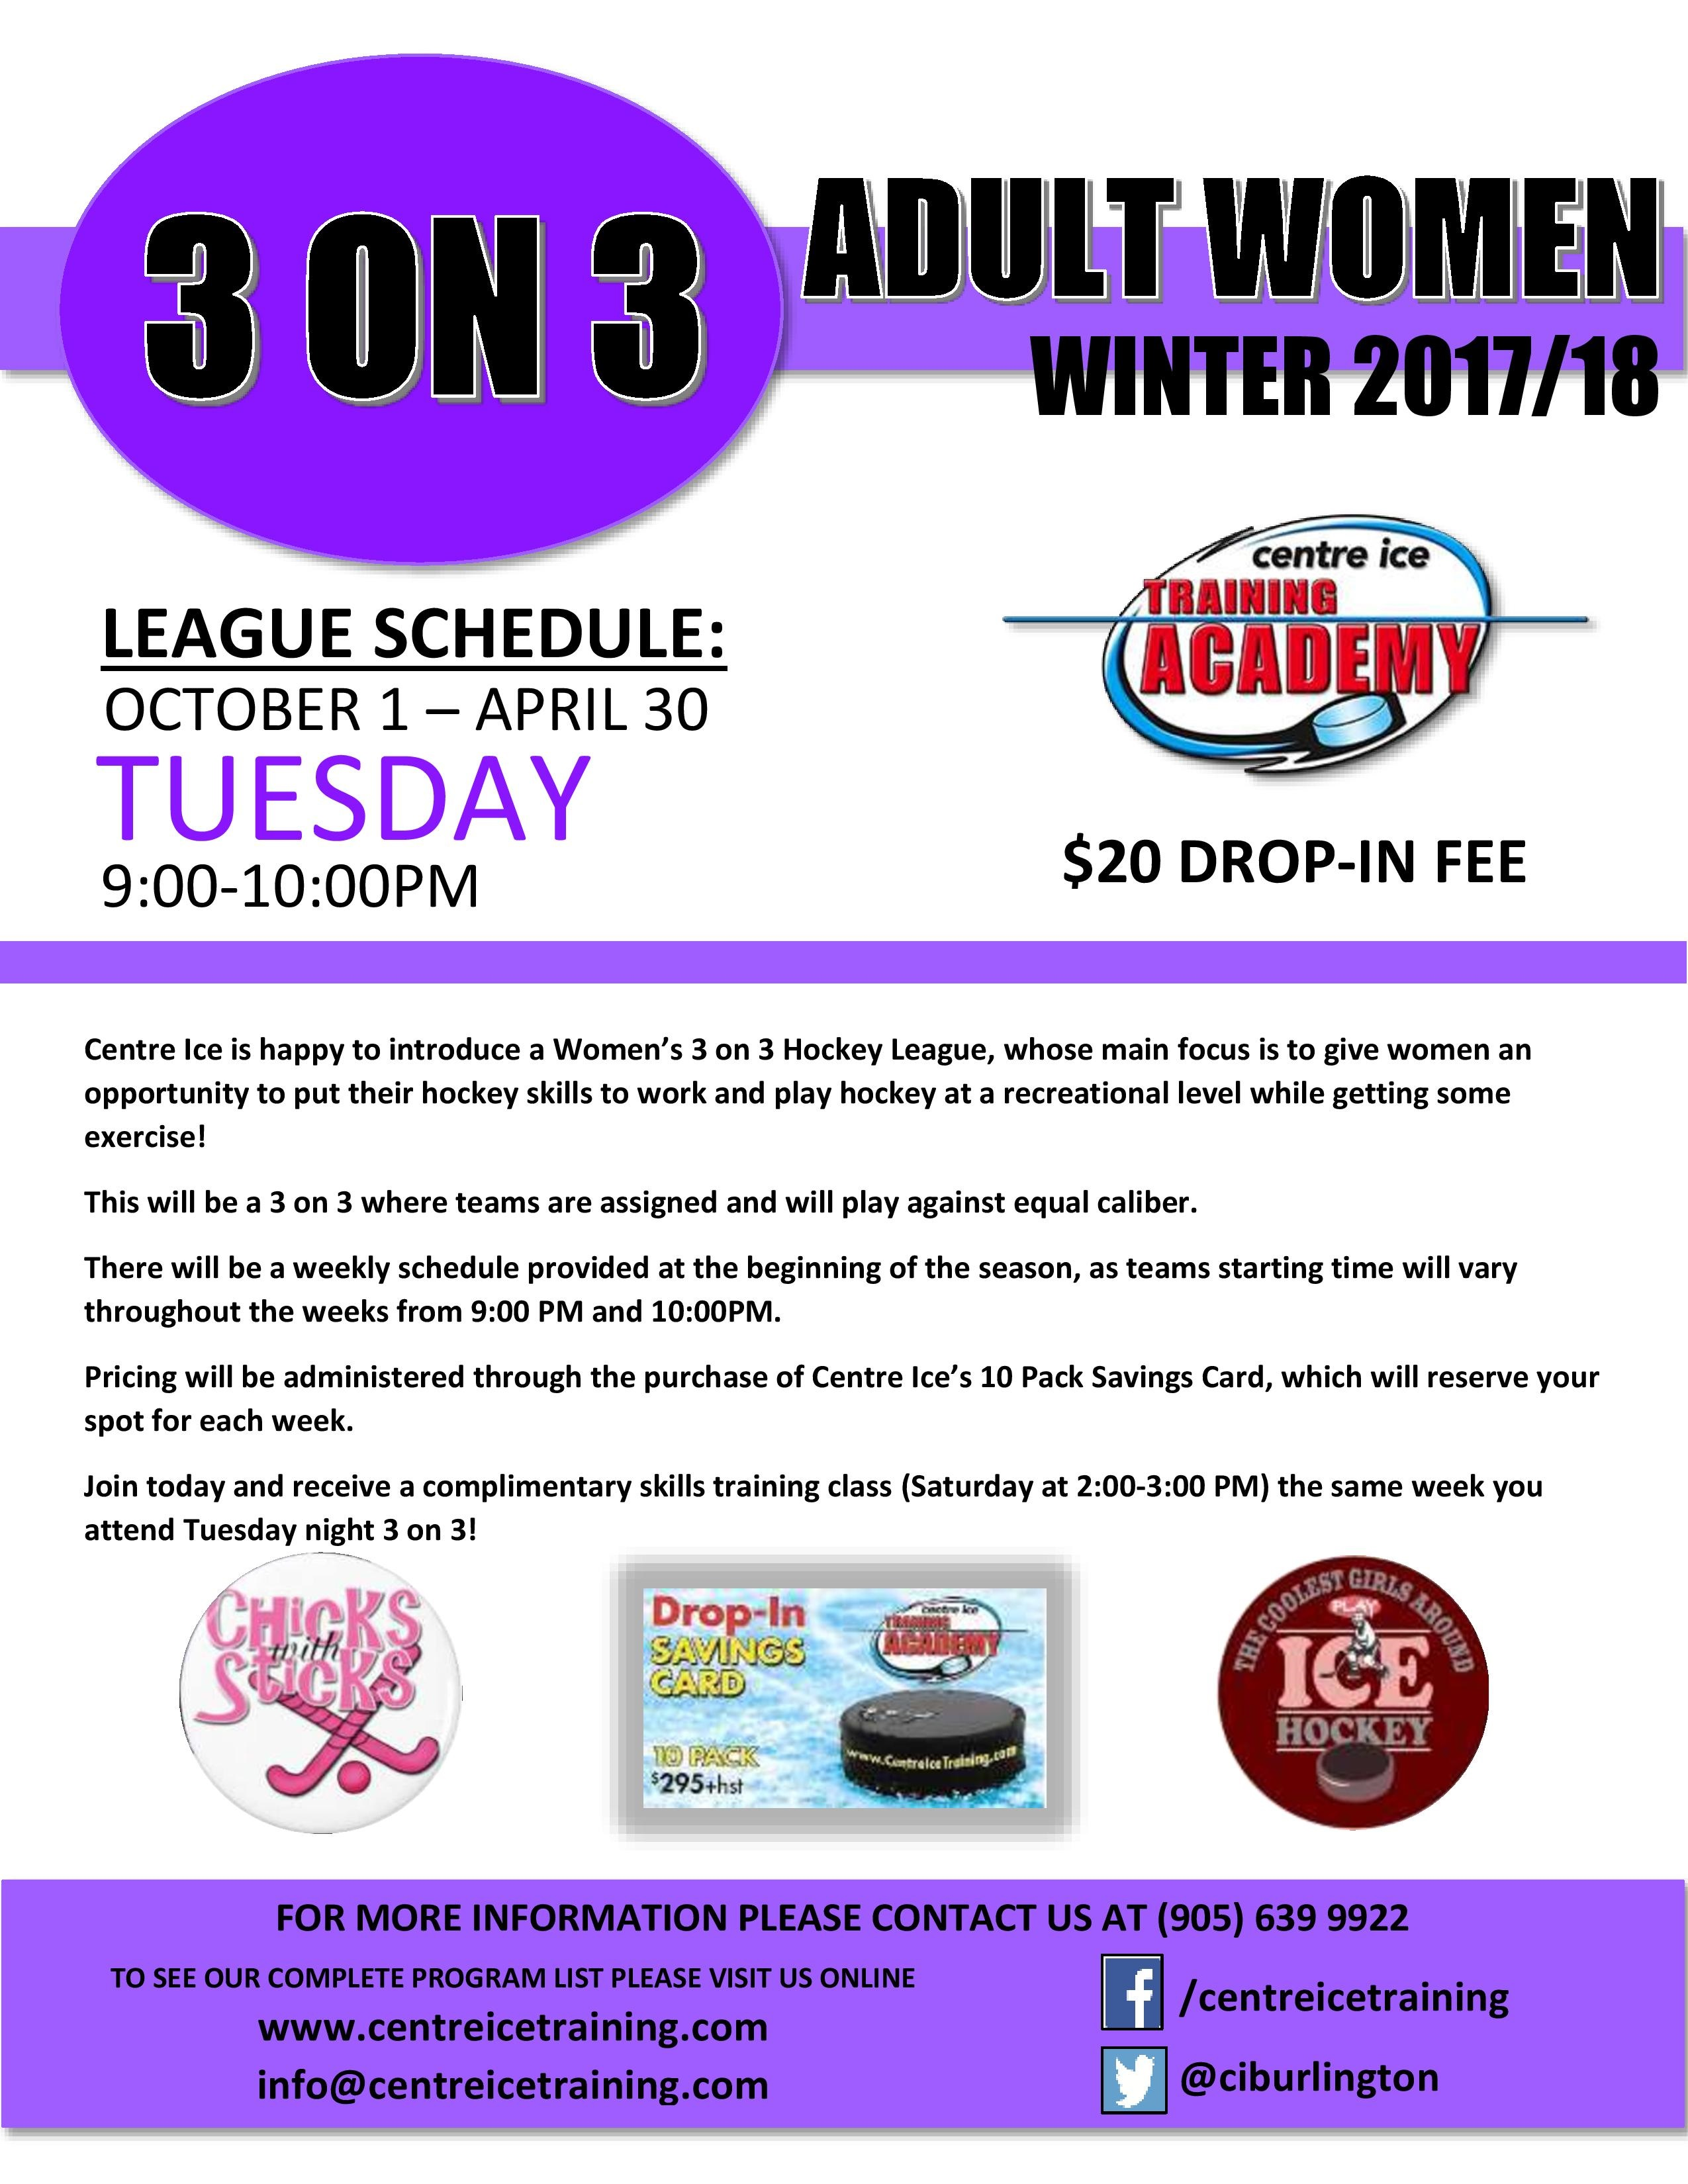 3 on 3 Adult Women Winter 2017-18